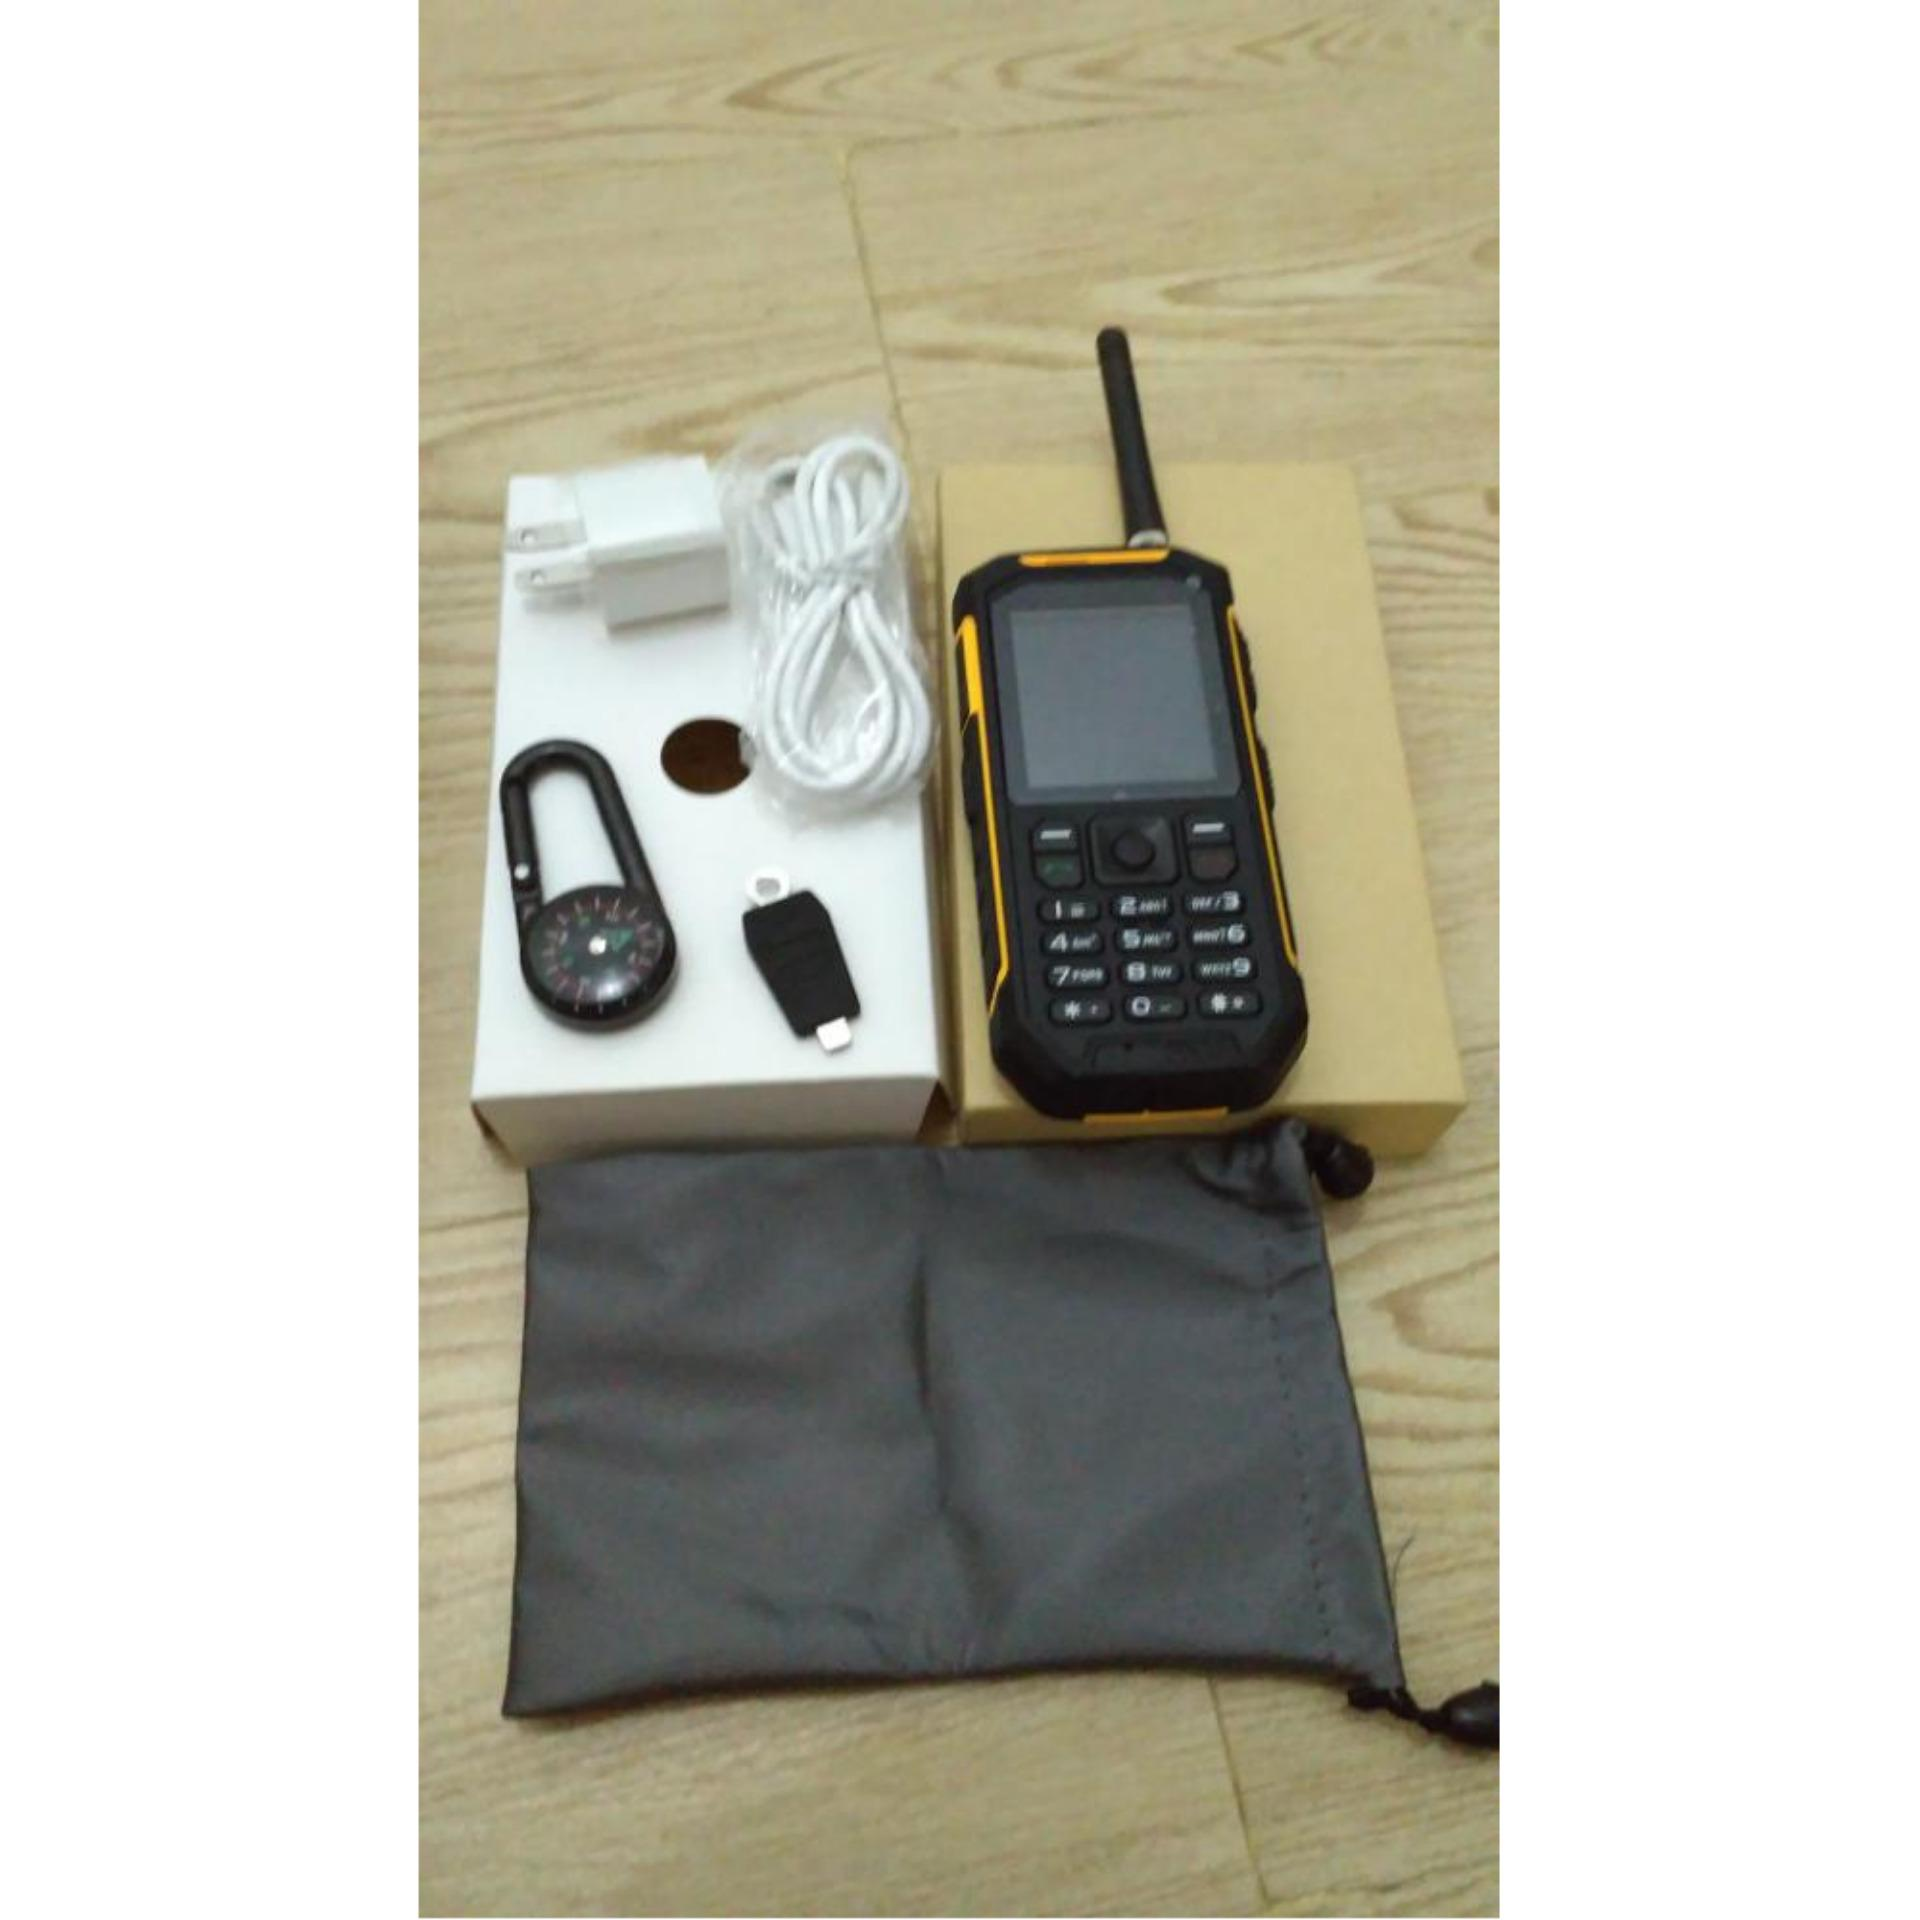 ... landrover X6 walky talky UHF HP Outdoor ...